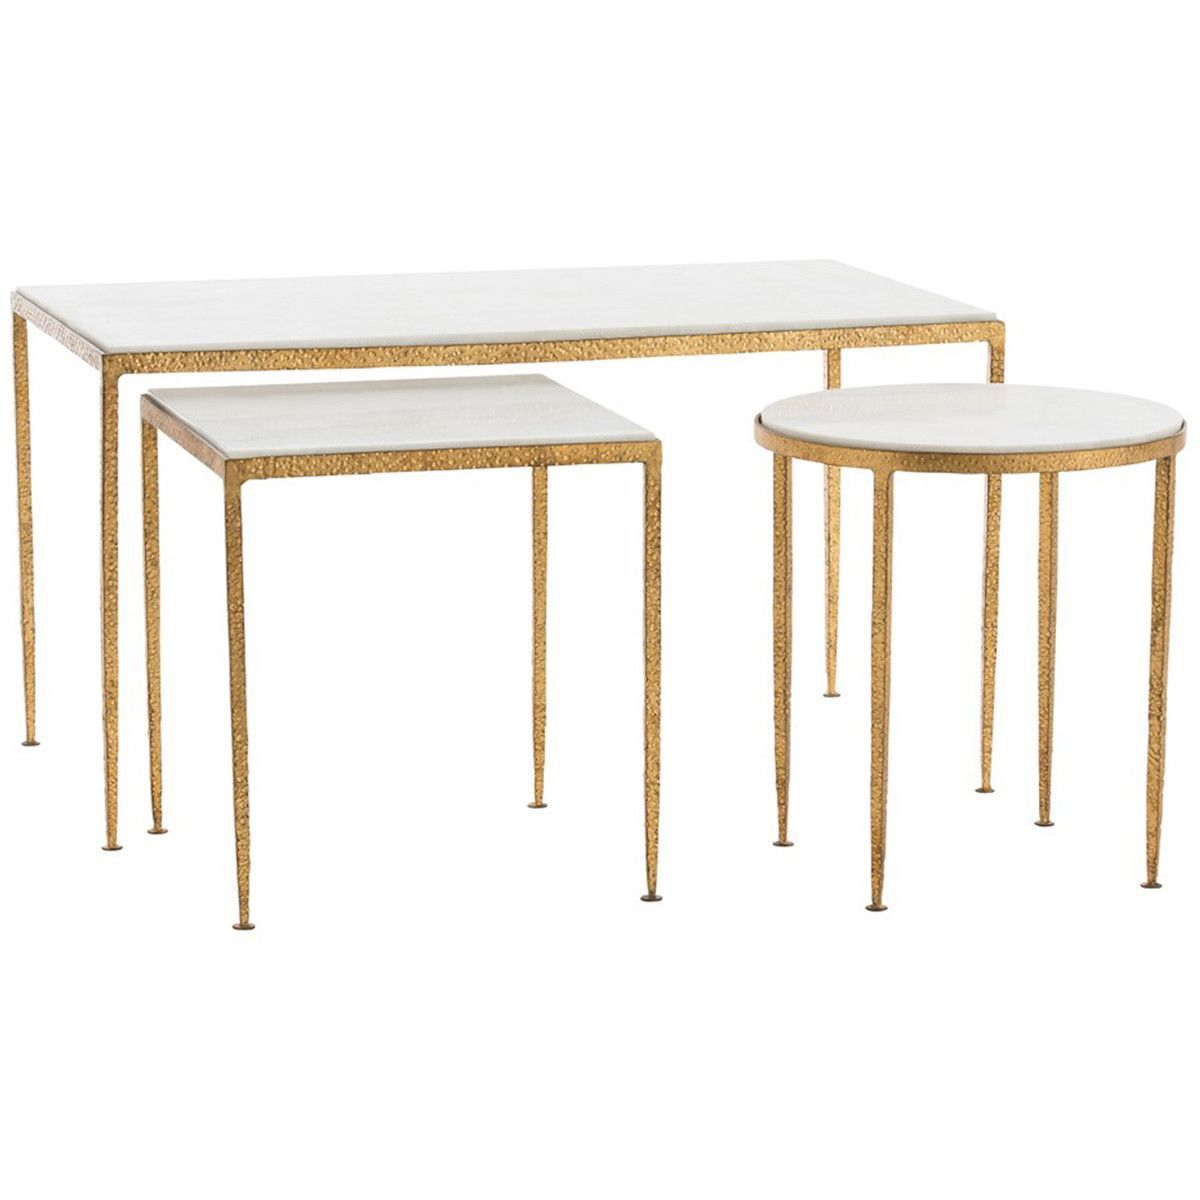 Arteriors Rosemary Coffee Table Set Of 3 Coffee Table Gold